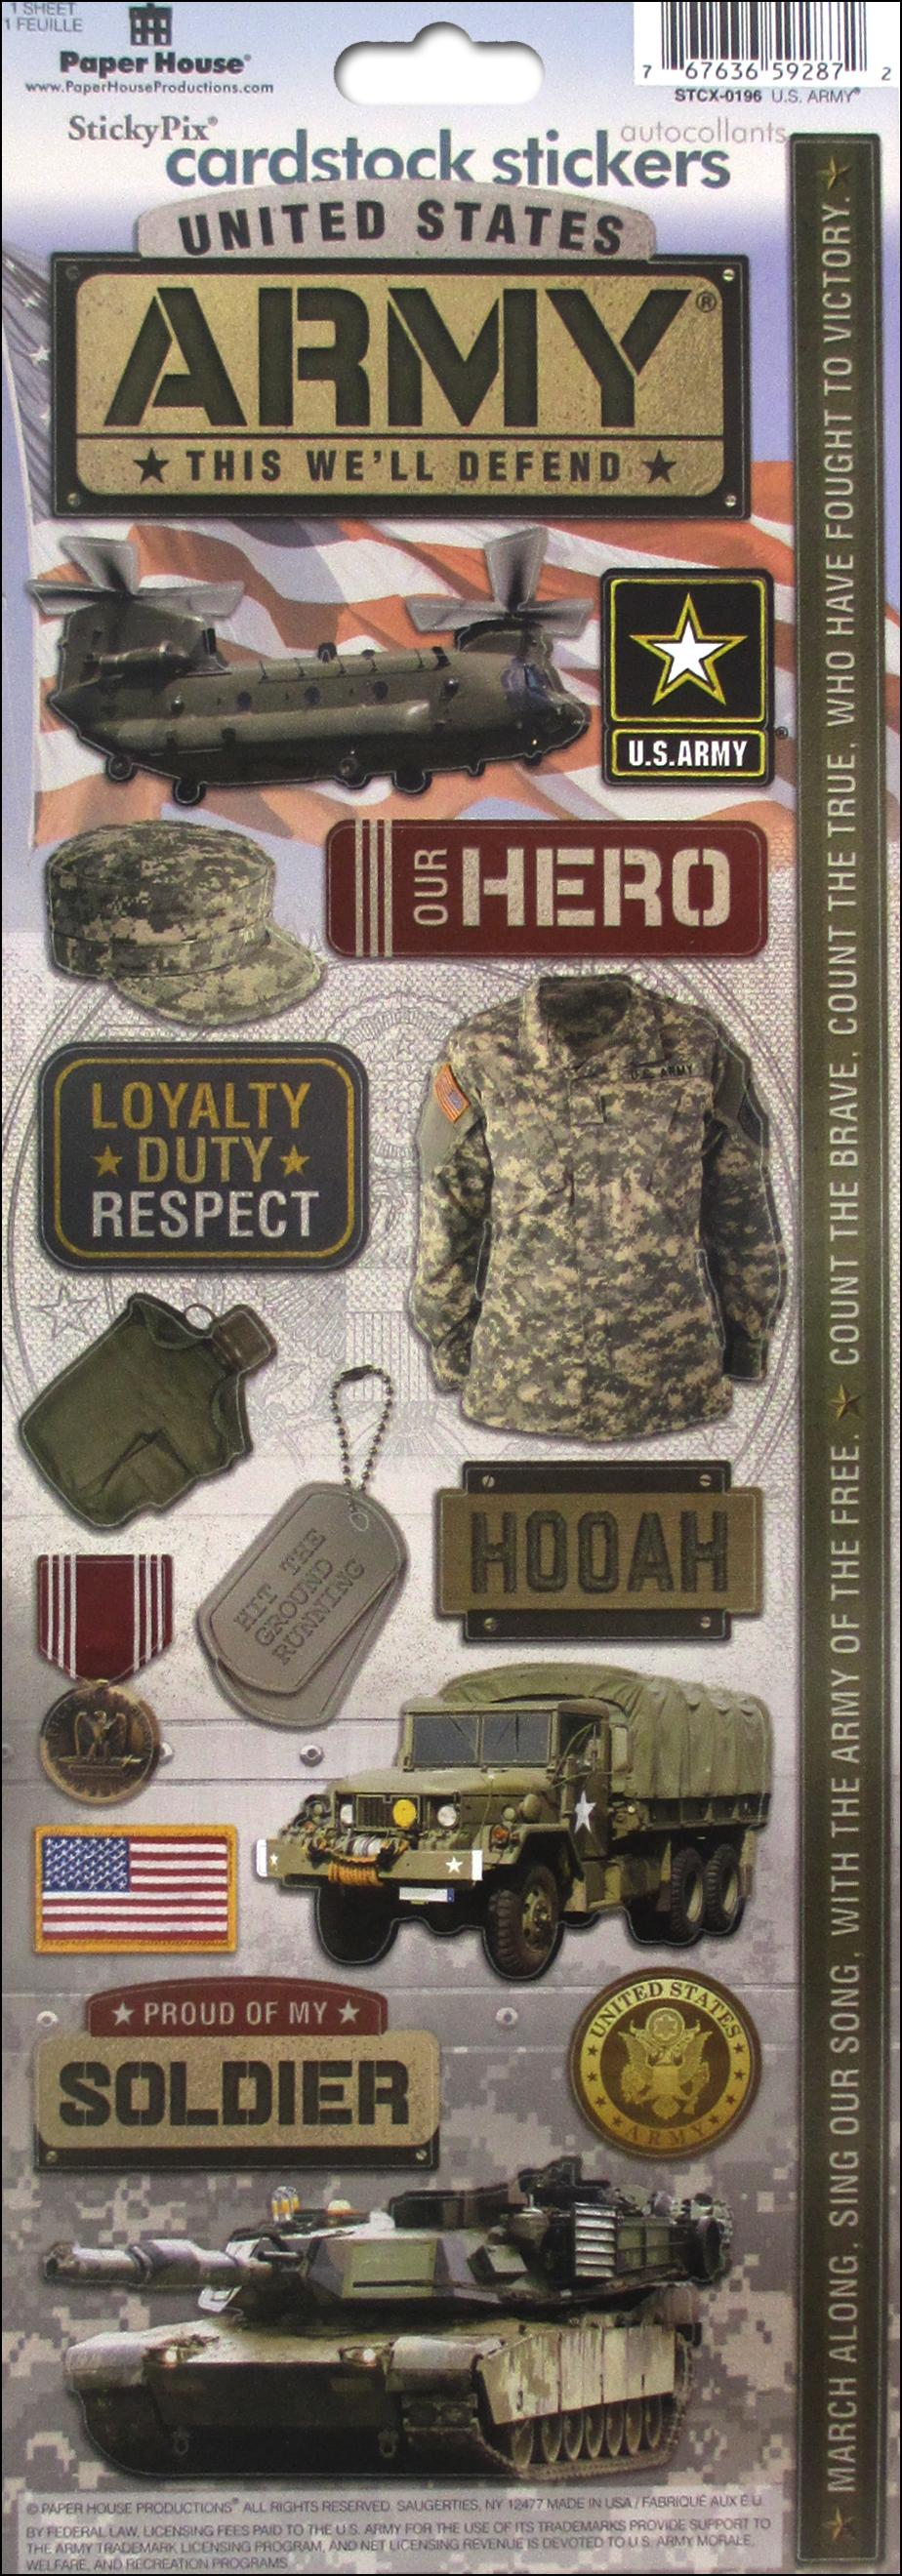 Military Family Dog Tags Camo Hero On The Move Paper House Cardstock Sticker